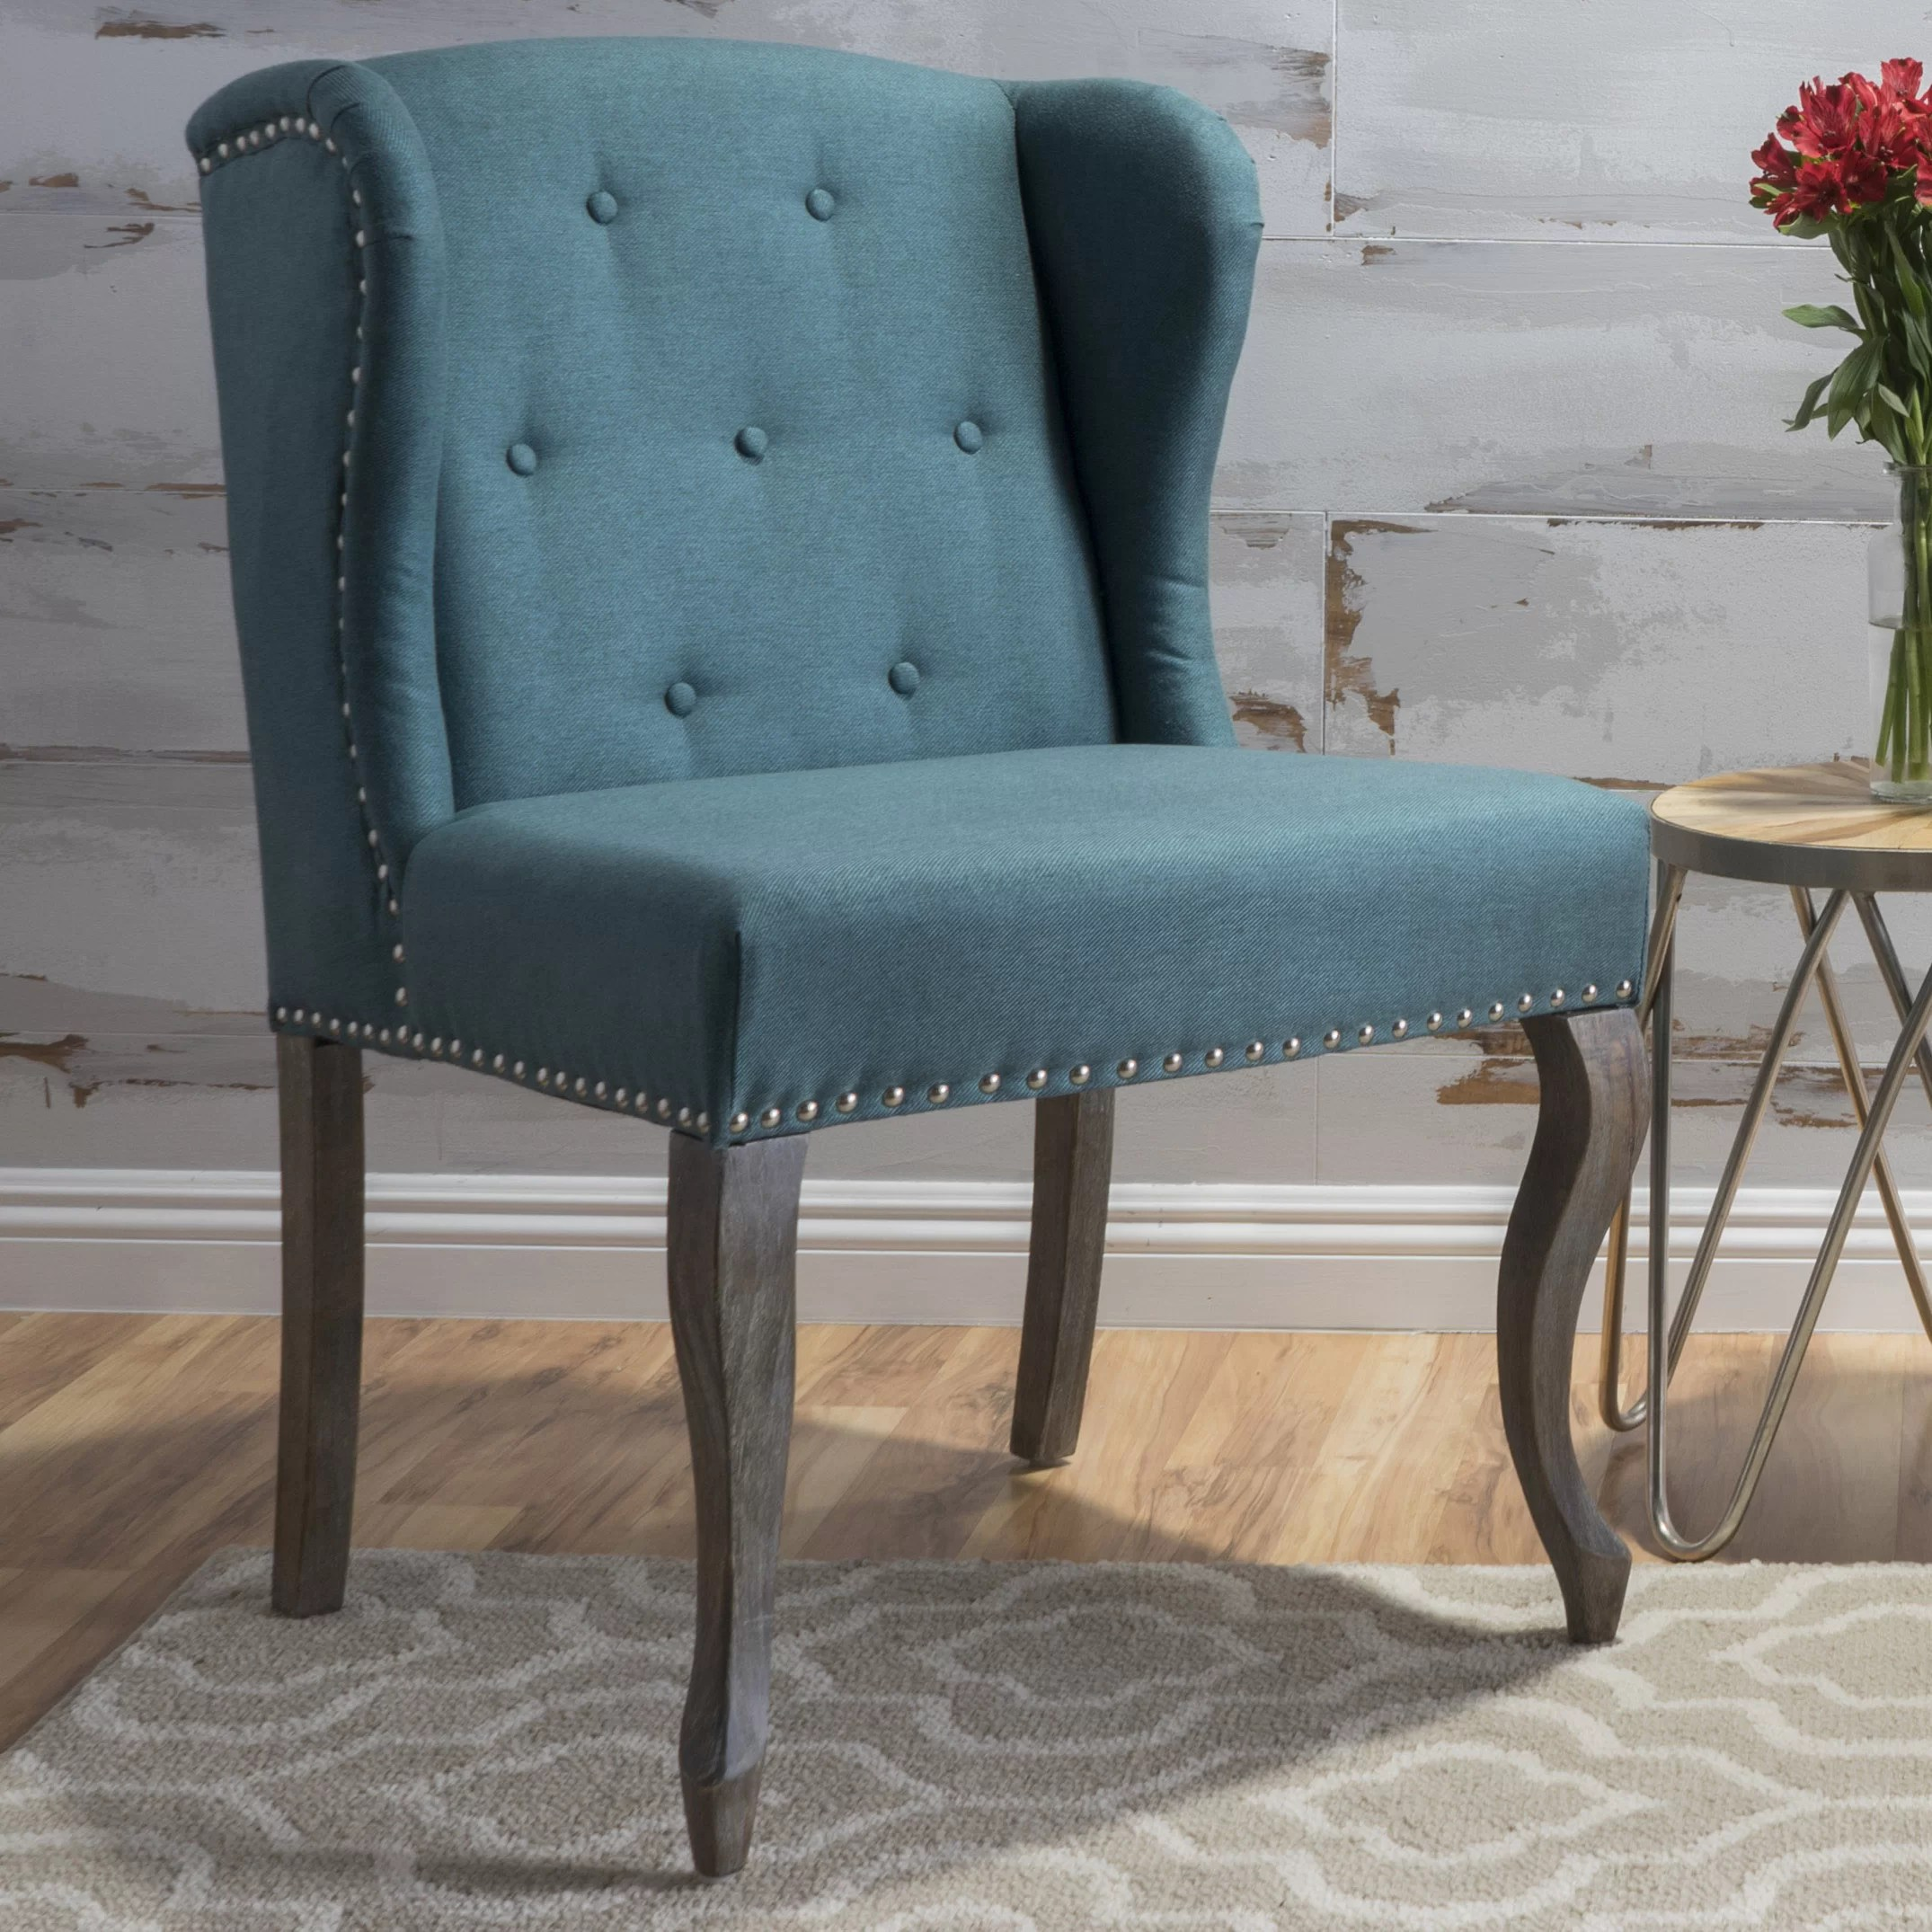 Teal Wingback Chair Soan Wingback Chair